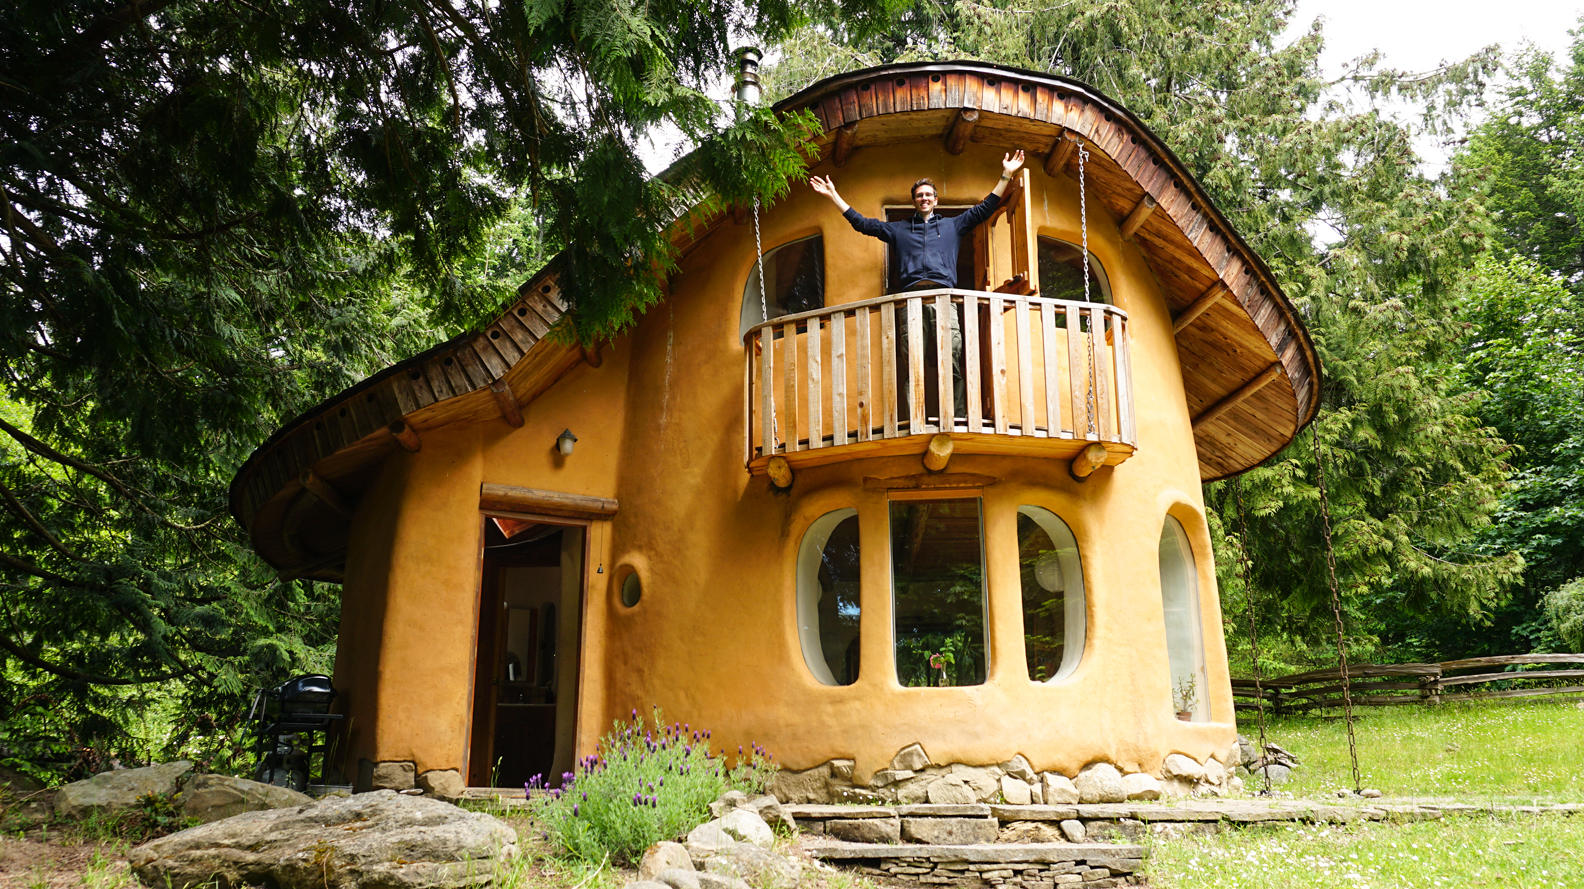 Incredible cob house tour 2 story cob cottage originally for Building a 2 story house